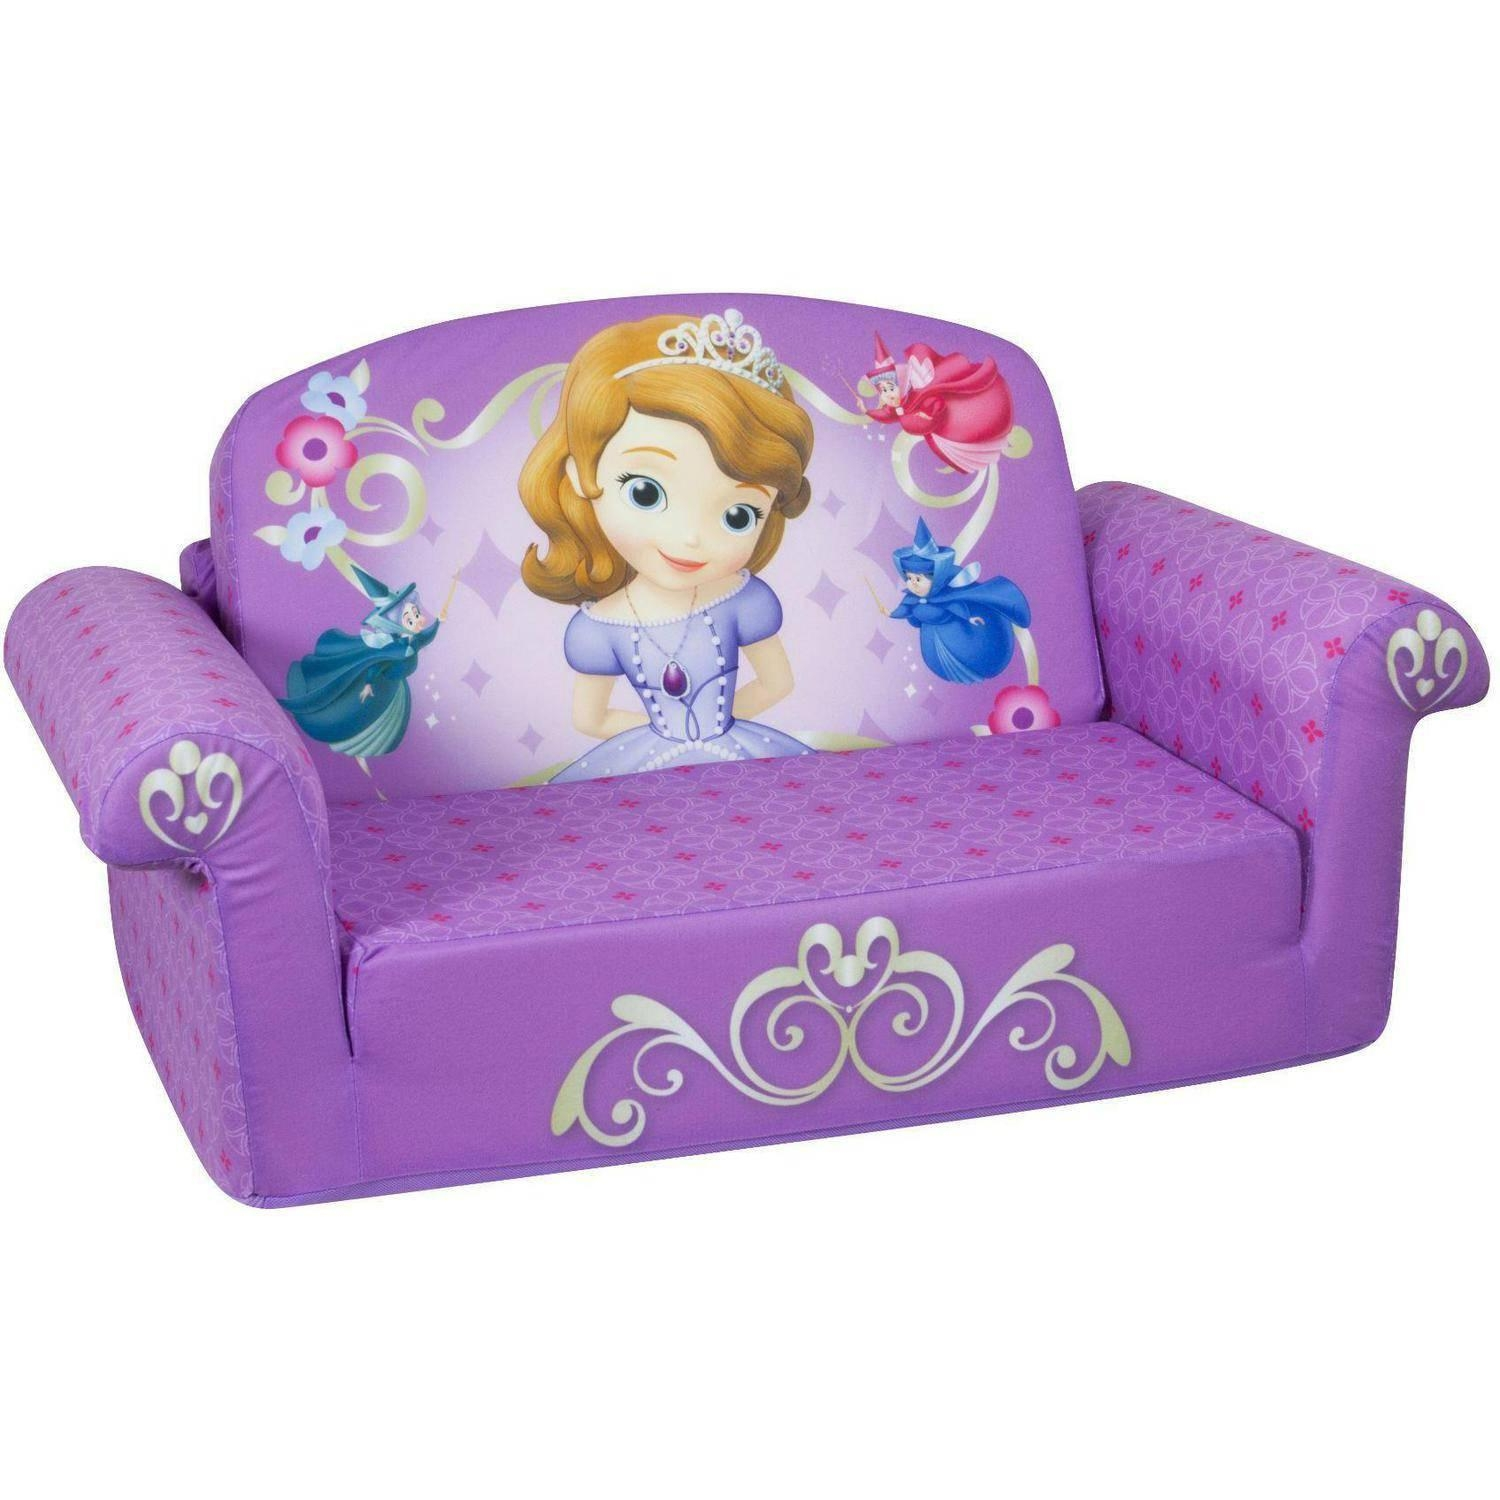 Marshmallow 2 In 1 Flip Open Sofa, Disney Sofia The First Intended For Princess Flip Open Sofas (View 20 of 20)